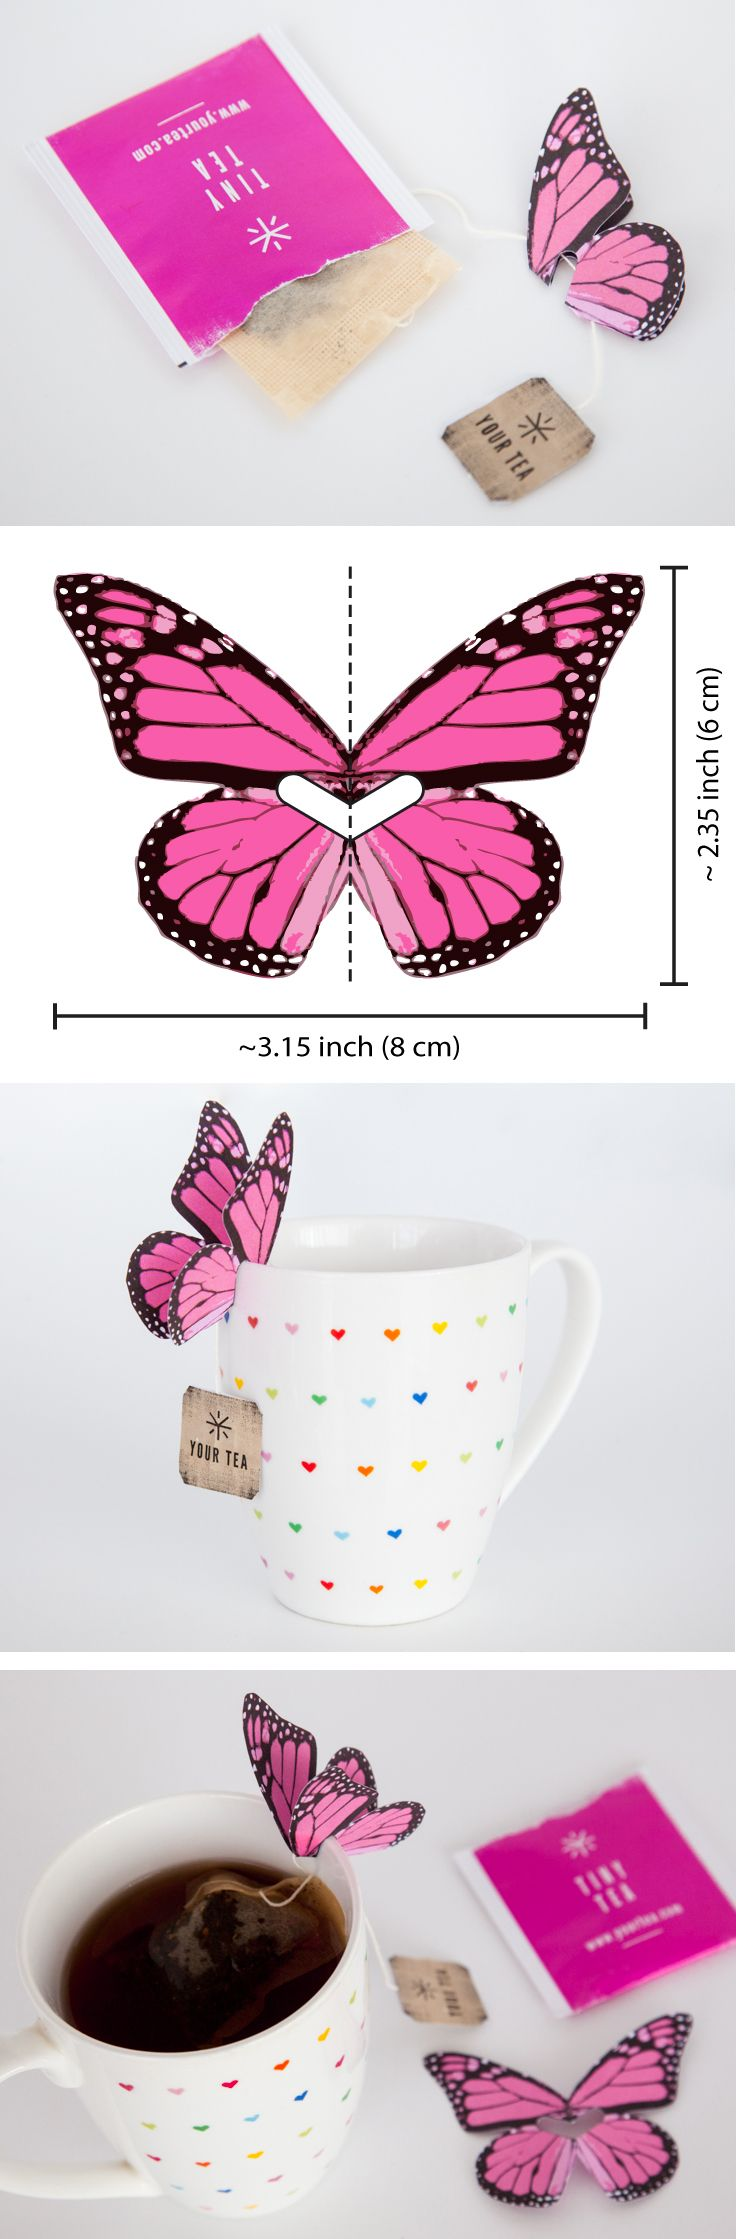 DIY paper butterfly tea bag holder – perfect décor for a garden party or brid...